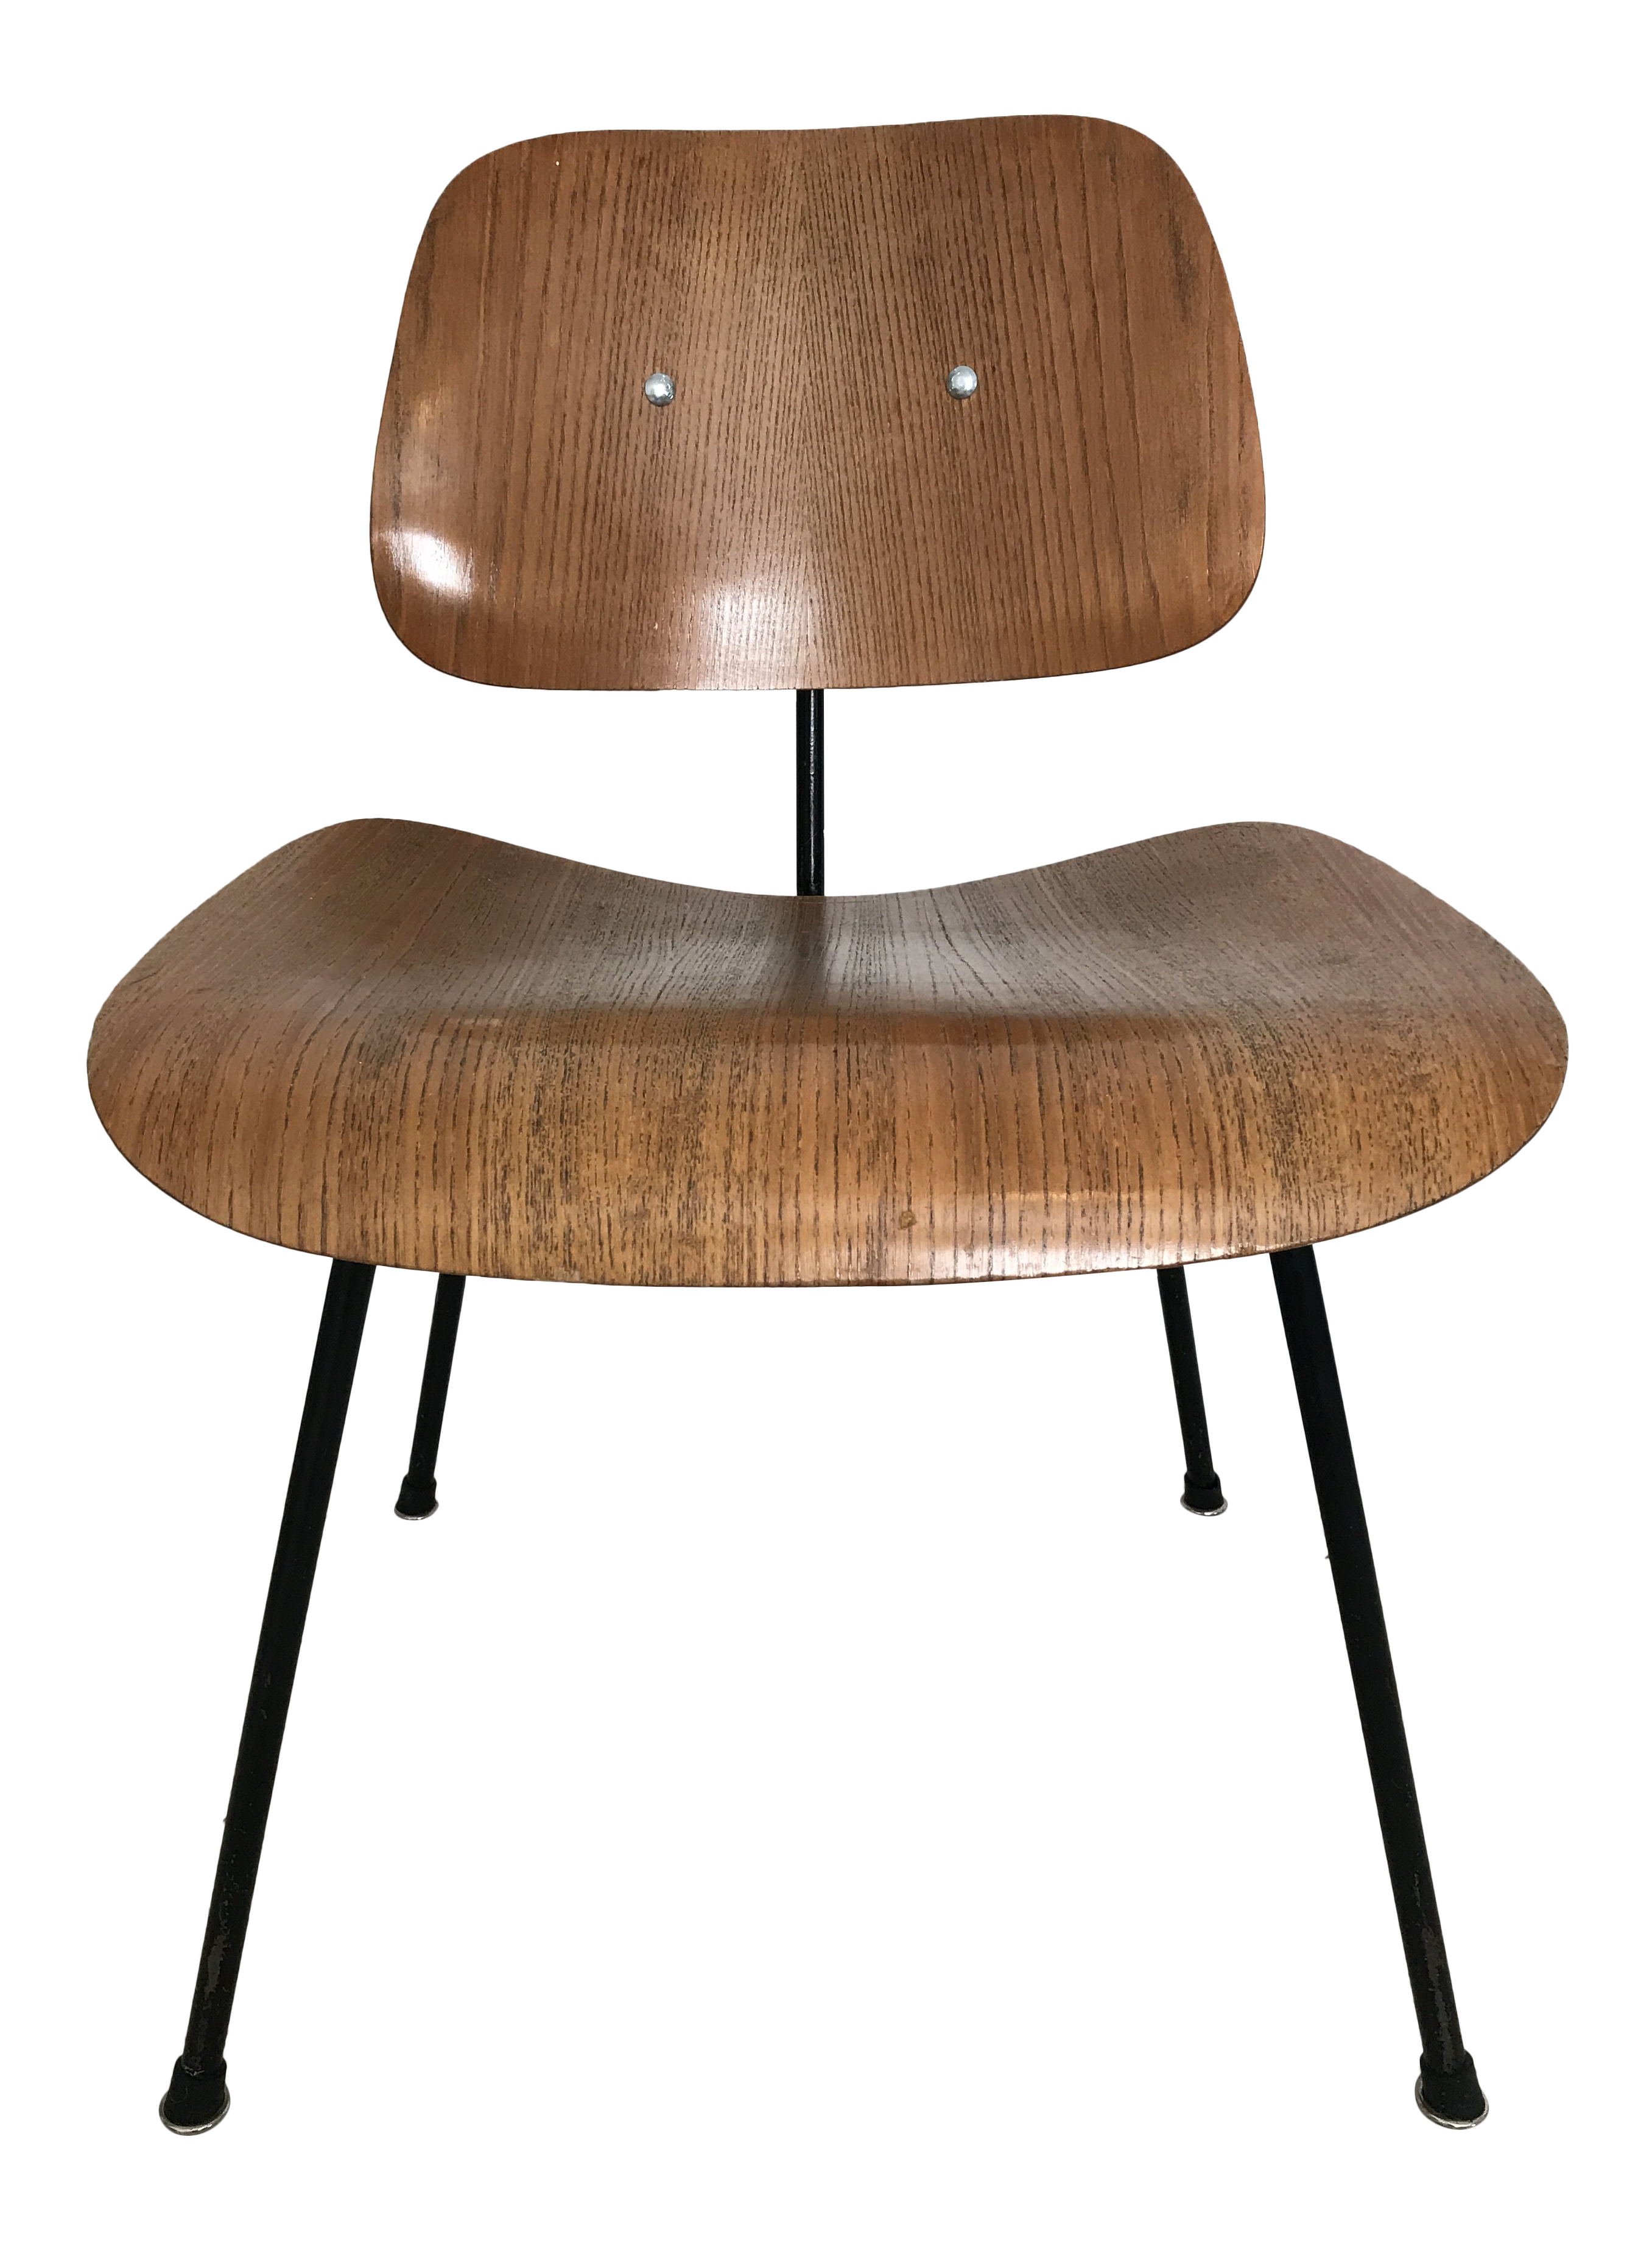 Vintage Eames By Herman Miller Dcm Plywood Dining Chair